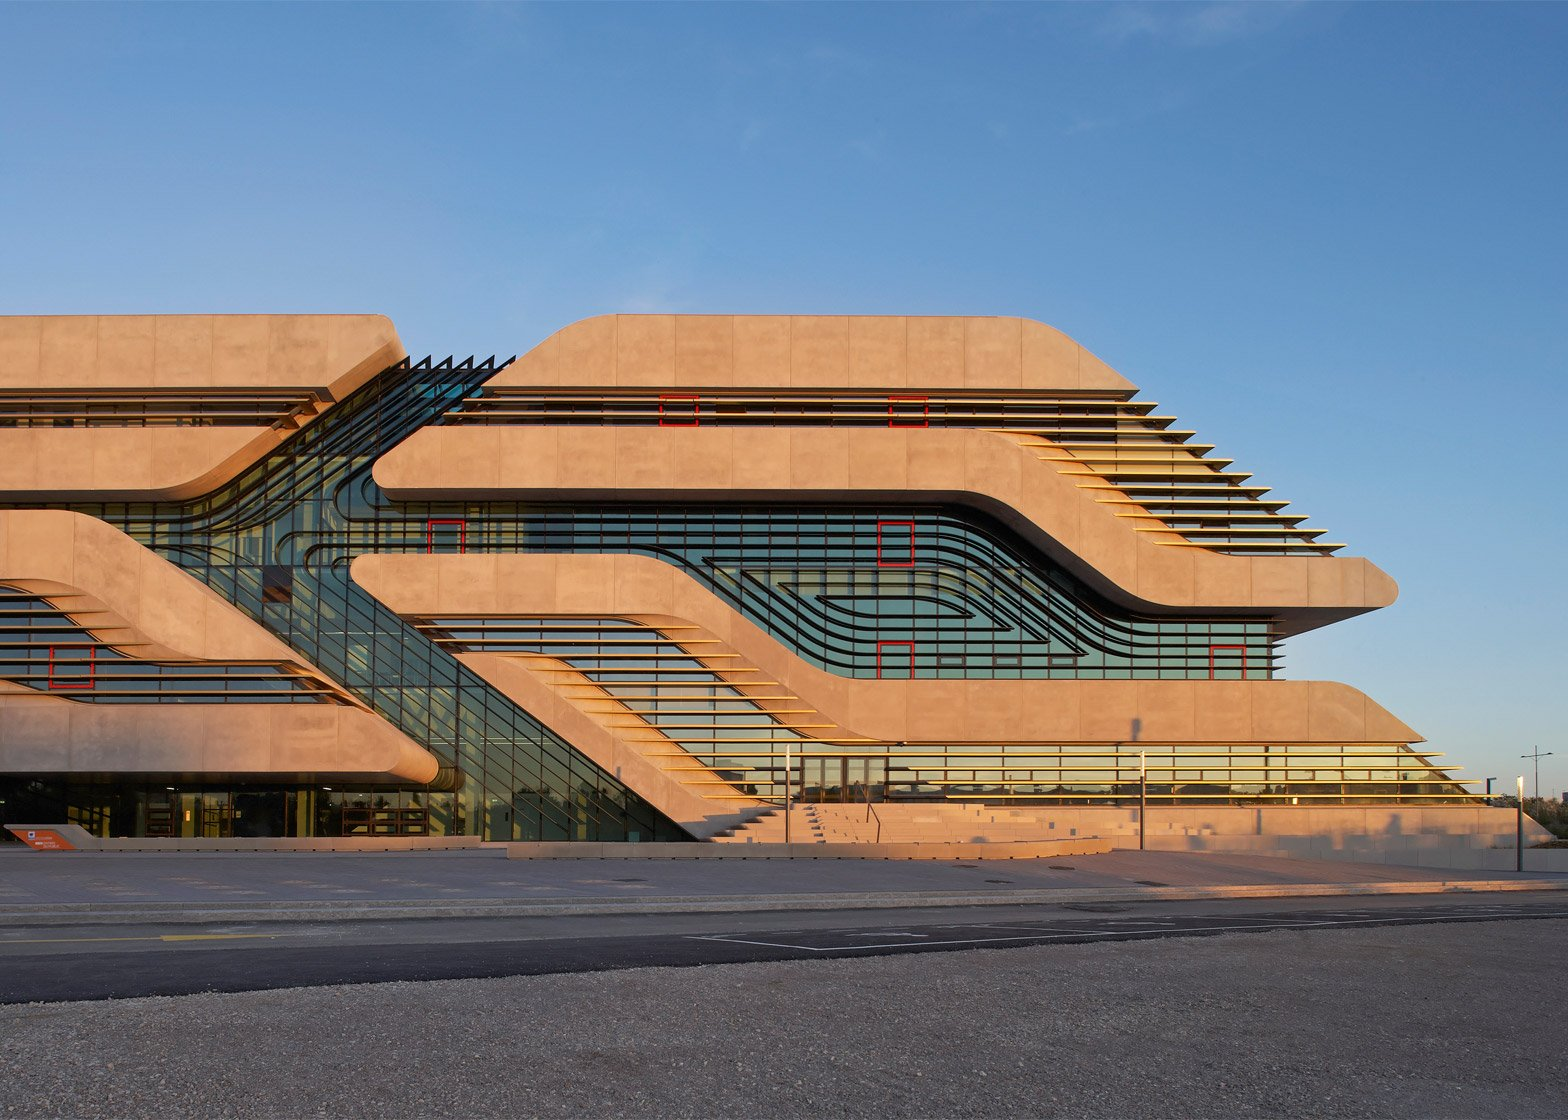 Zaha Hadid's best buildings photographed by Hufton + Crow